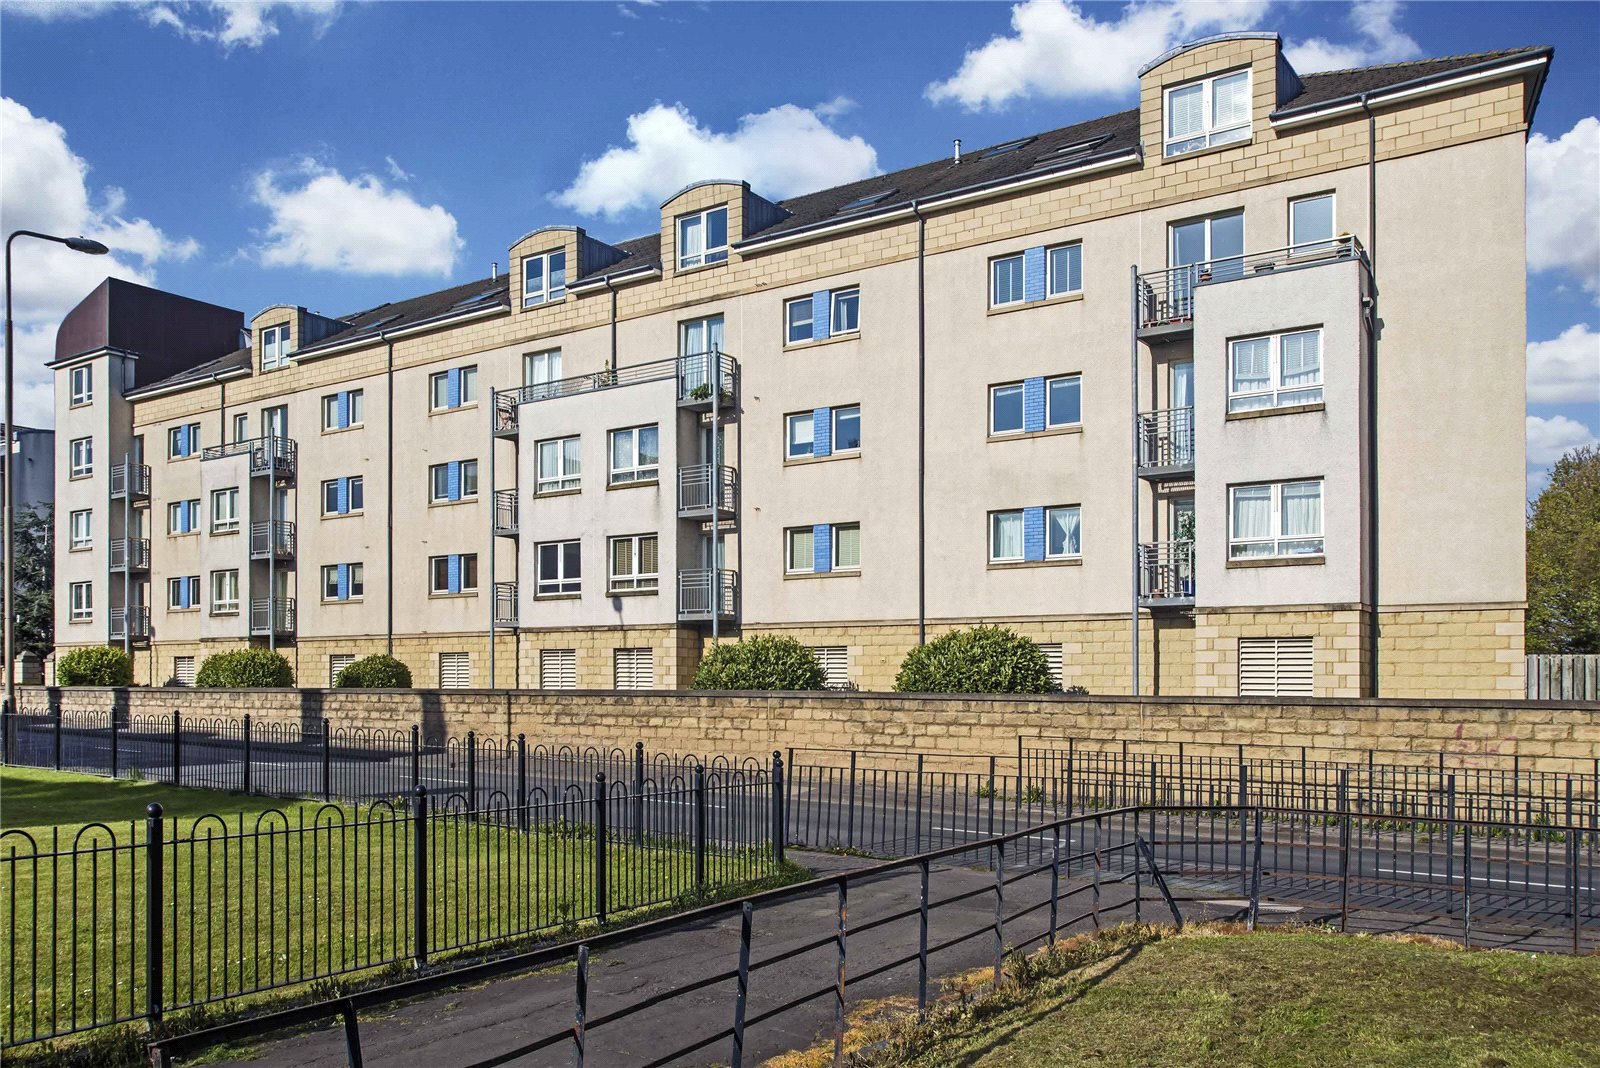 Edinburgh Property of the Week: North Fettes Apartments